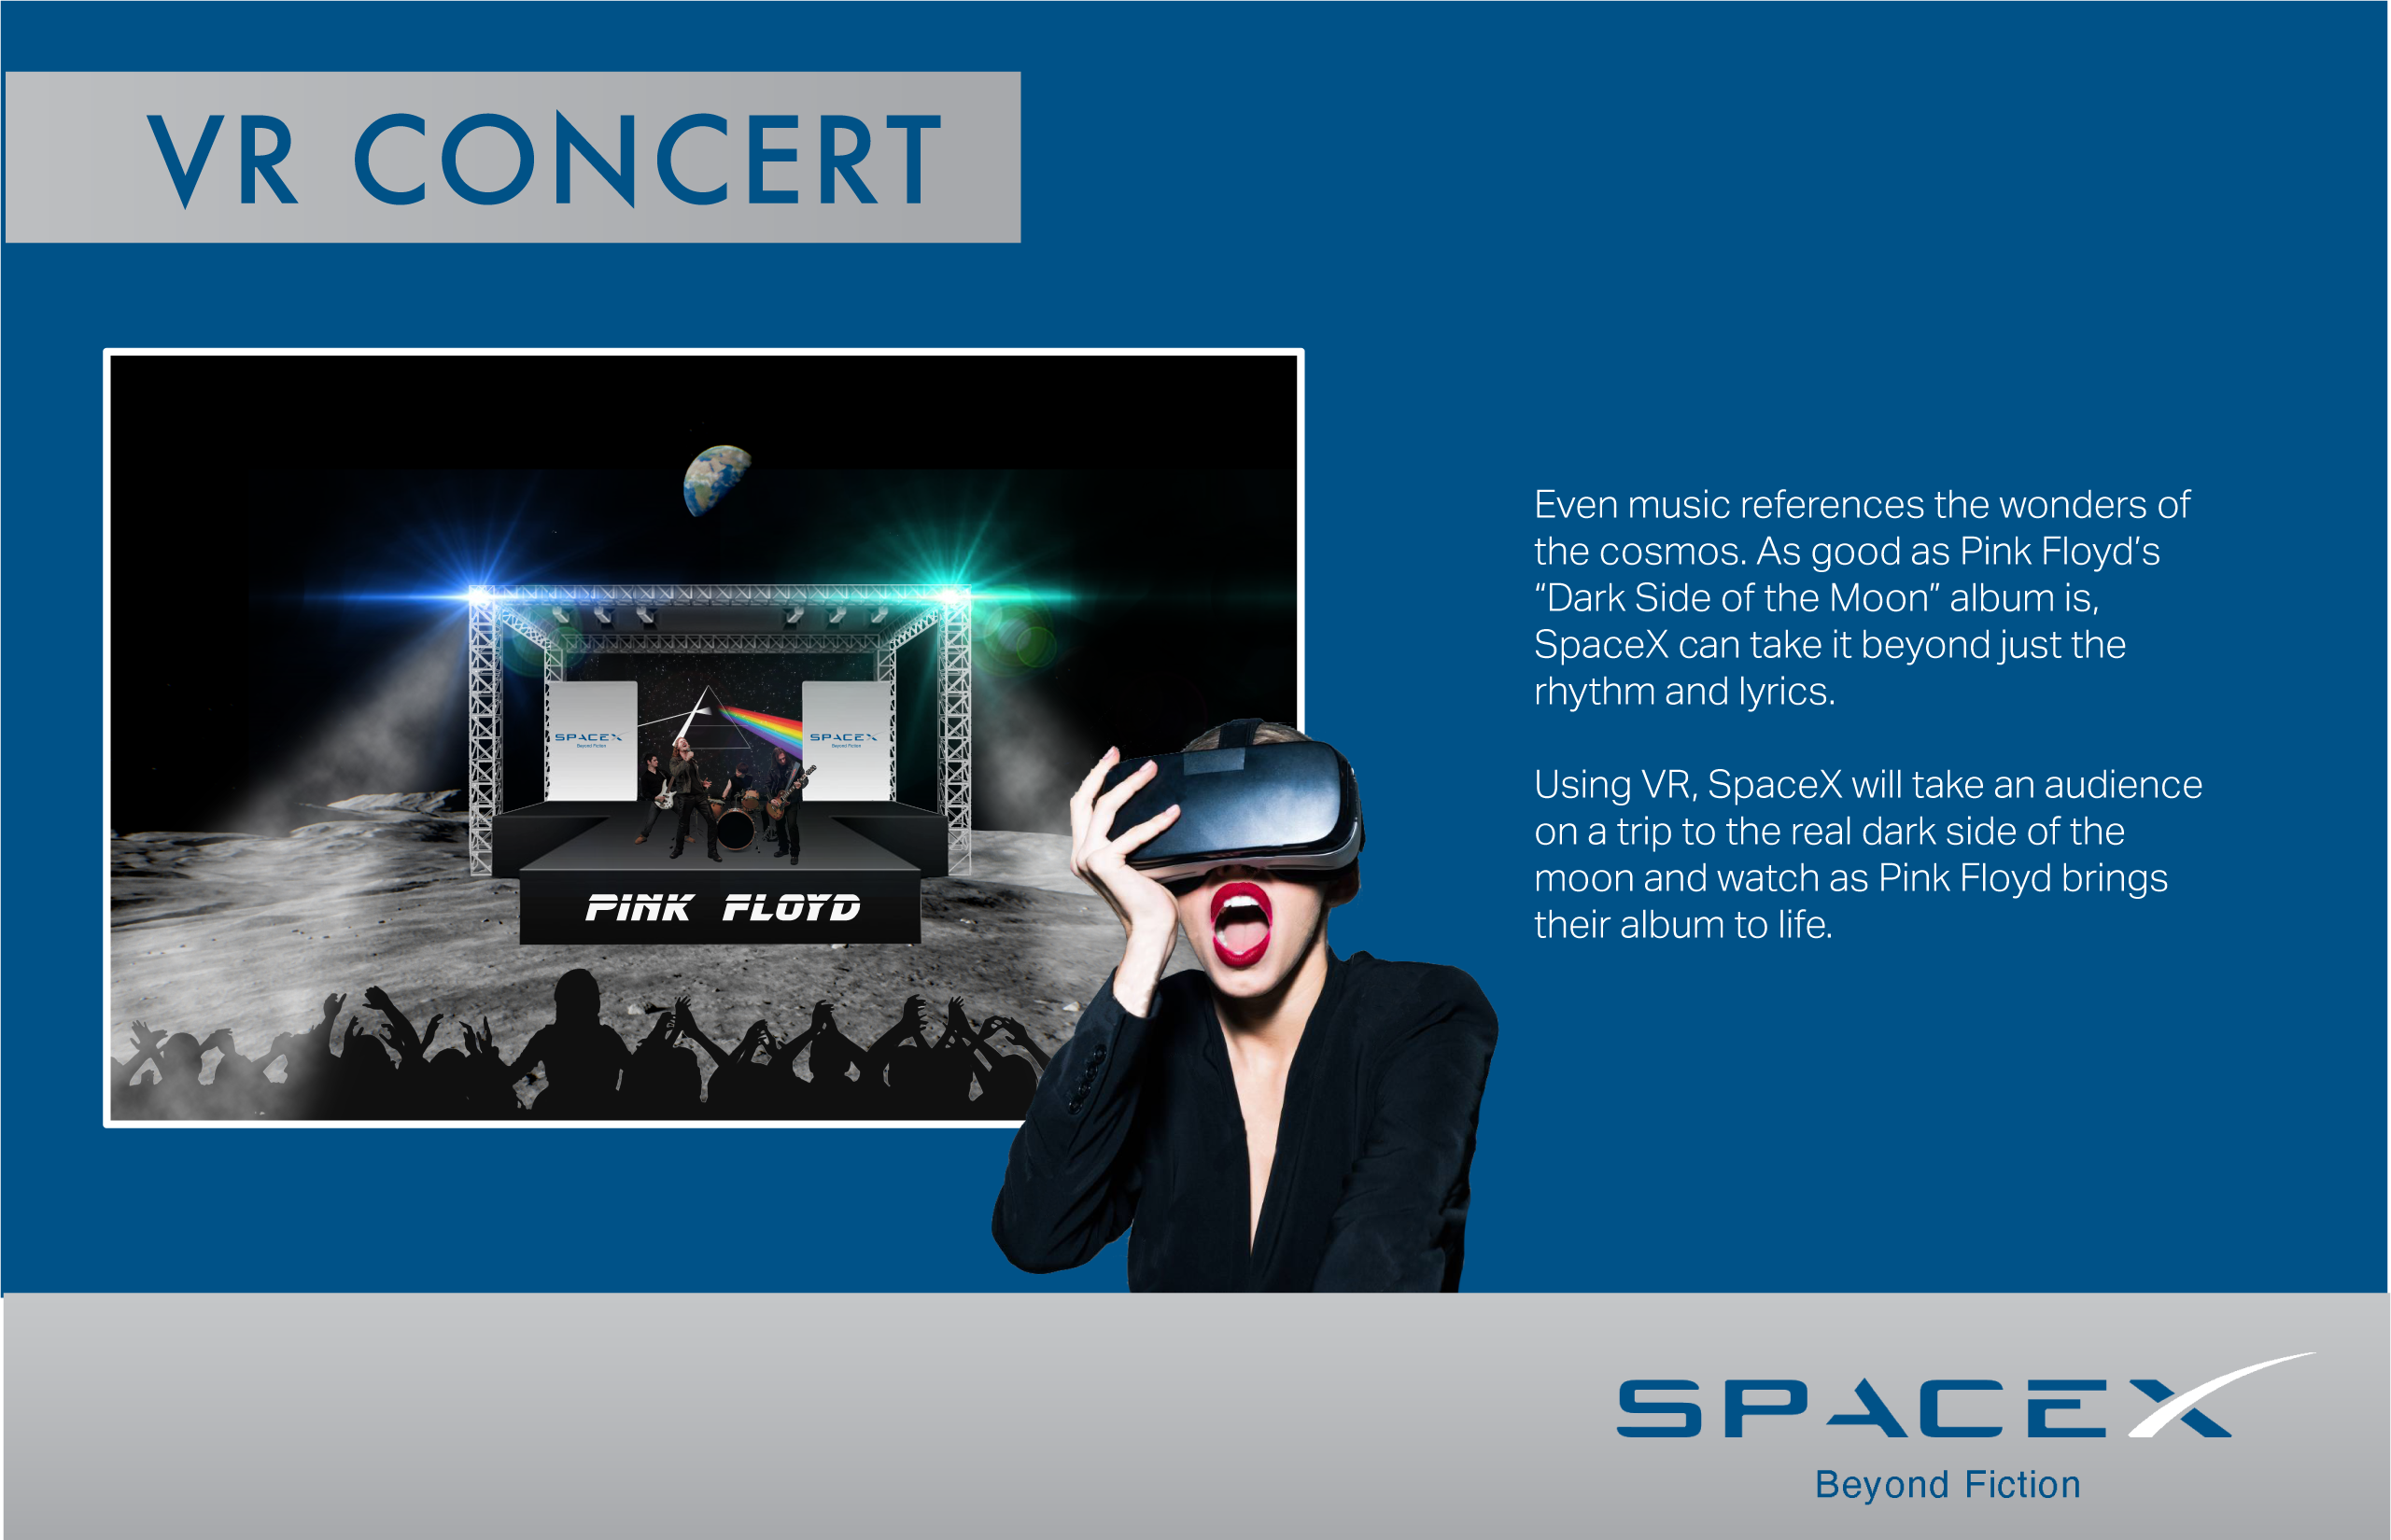 Space X VR Concert